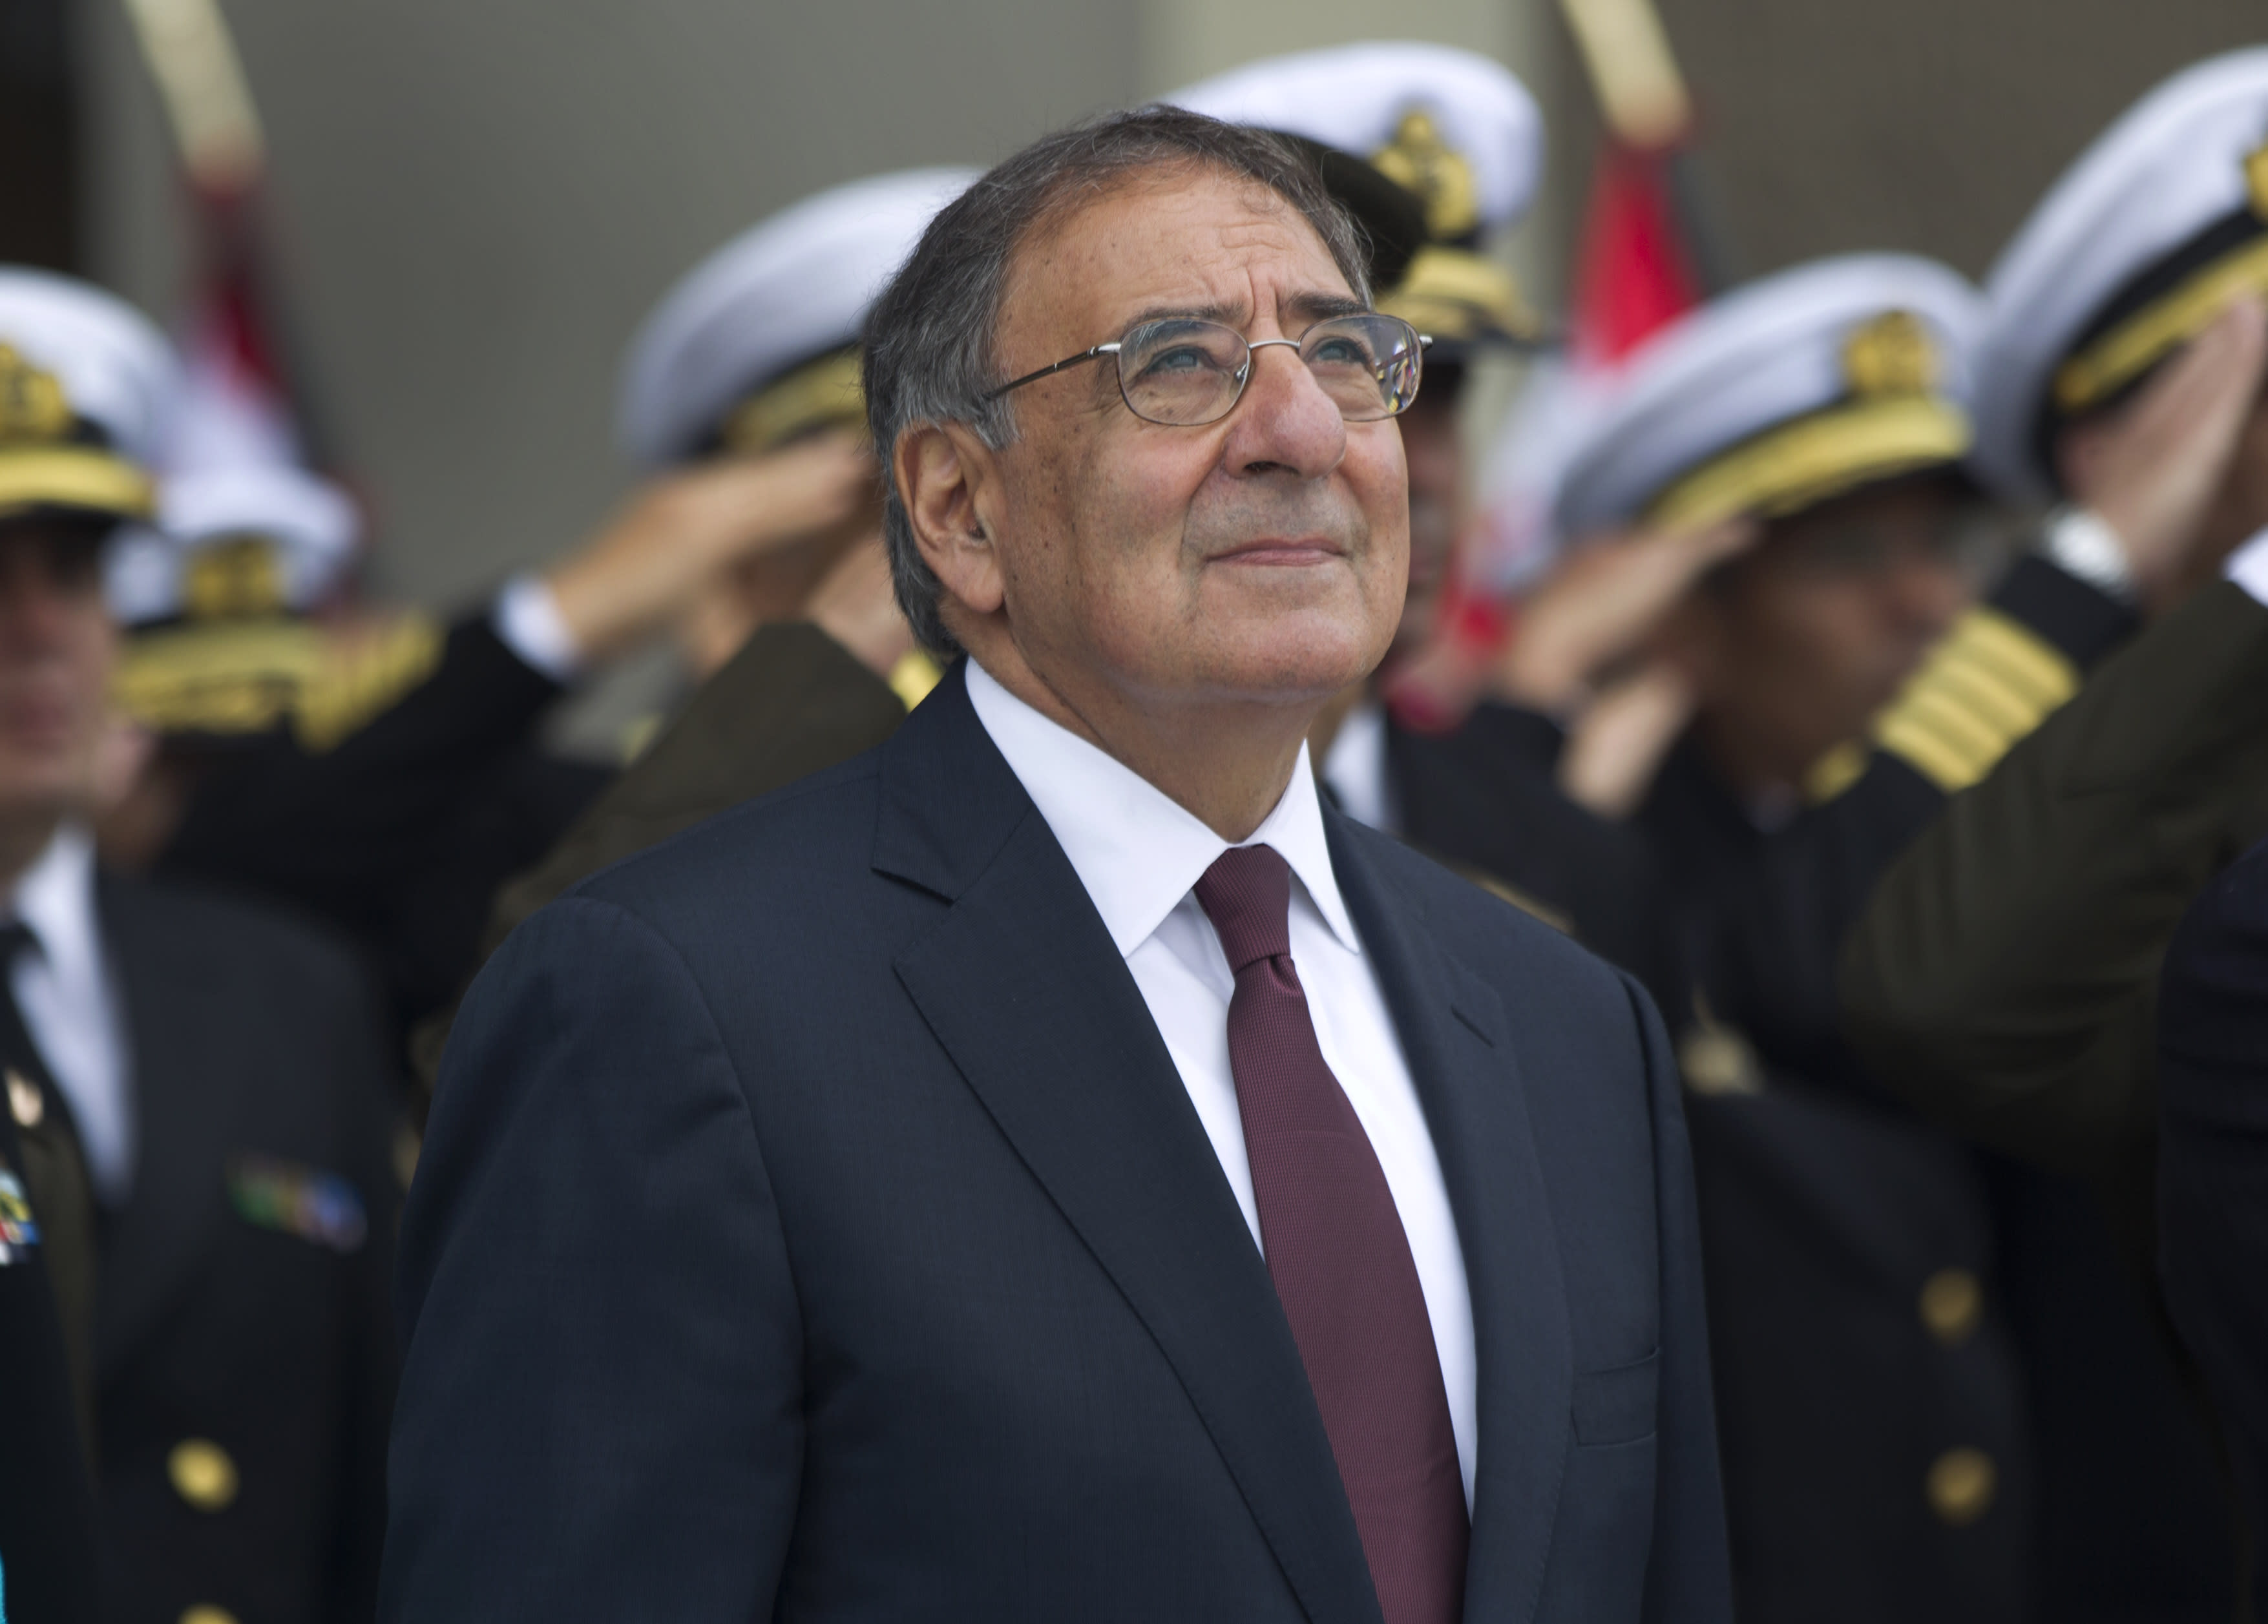 U.S. Defense Secretary Leon Panetta attends a ceremony at army headquarters in Lima, Peru, Saturday, Oct. 6, 2012. Panetta is in Lima on an official visit for one day. (AP Photo/Martin Mejia)